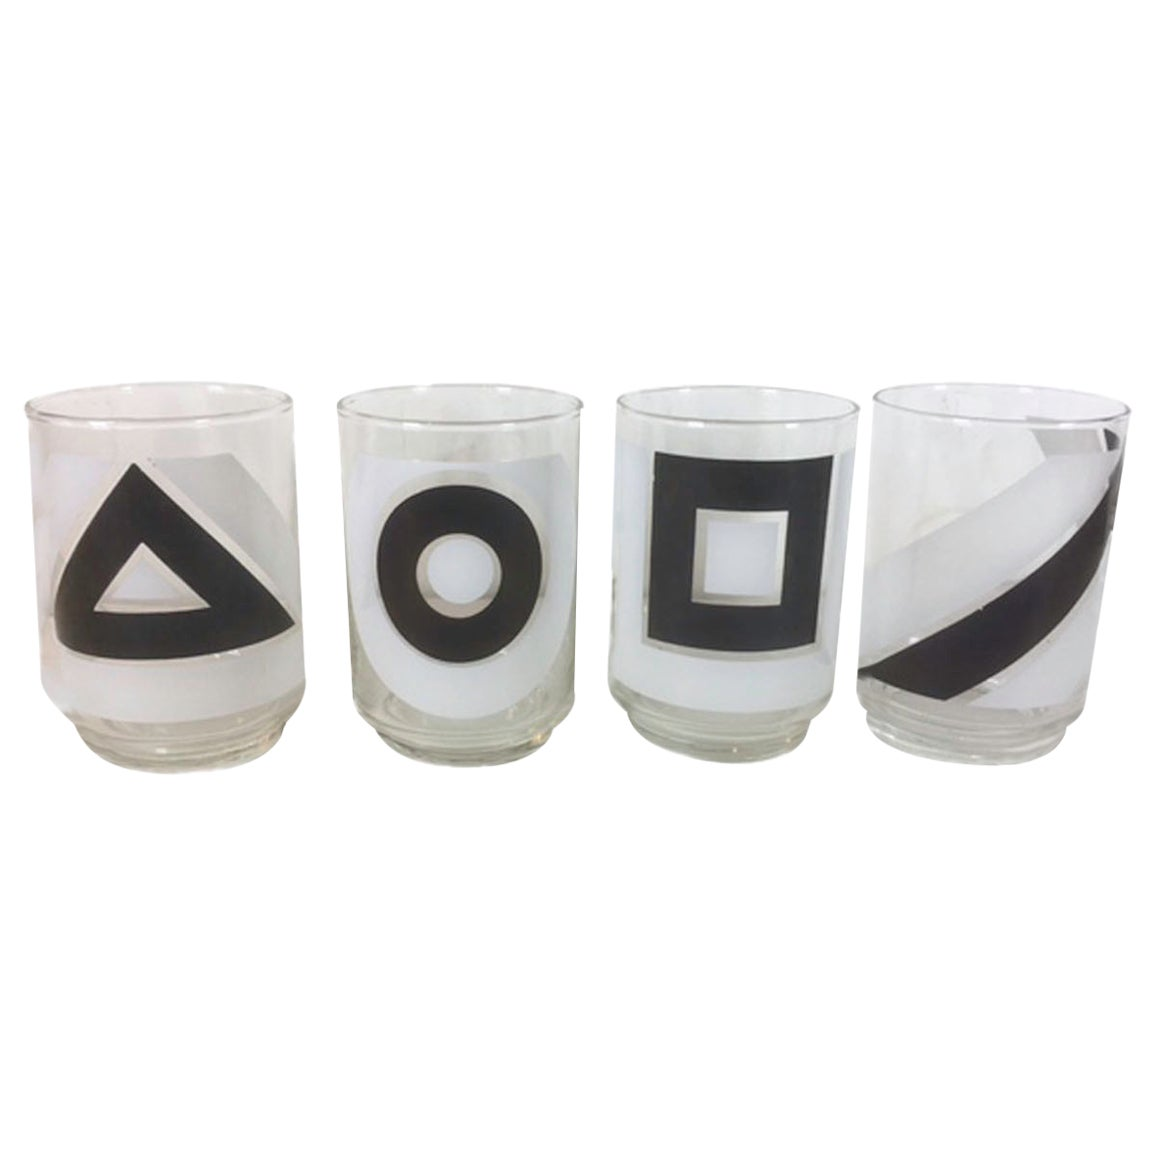 Vintage Libbey Glass, Black and White Geometric Shapes Cocktail Glasses